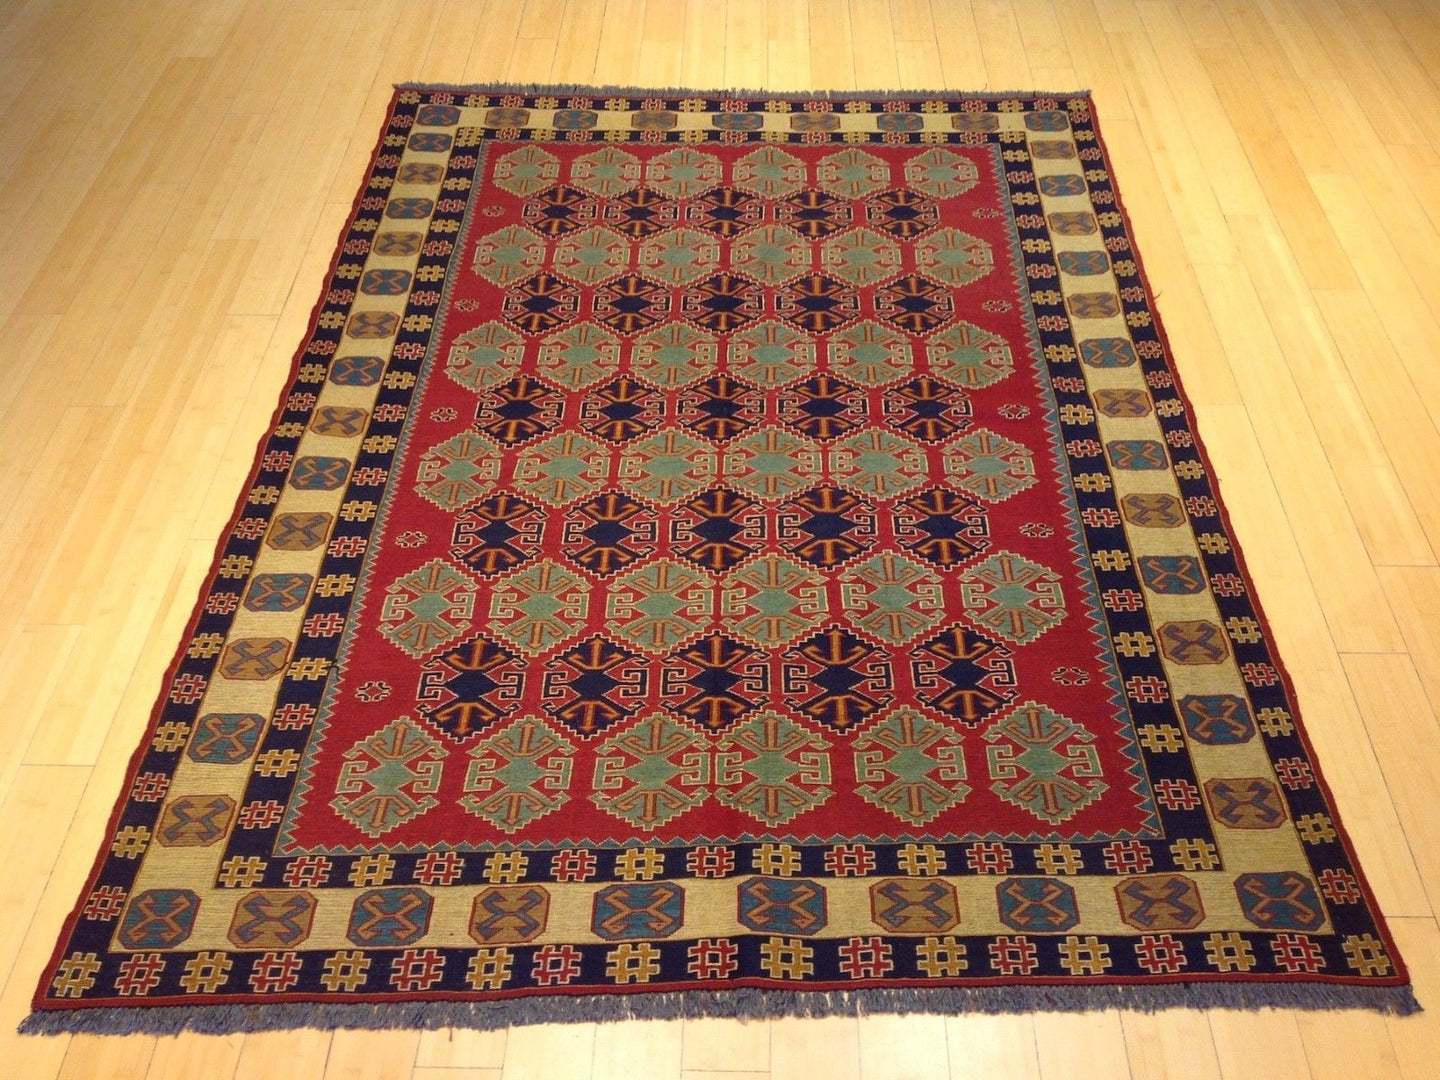 Oriental rugs, hand-knotted carpets, sustainable rugs, classic world oriental rugs, handmade, United States, interior design,  Brral-3741